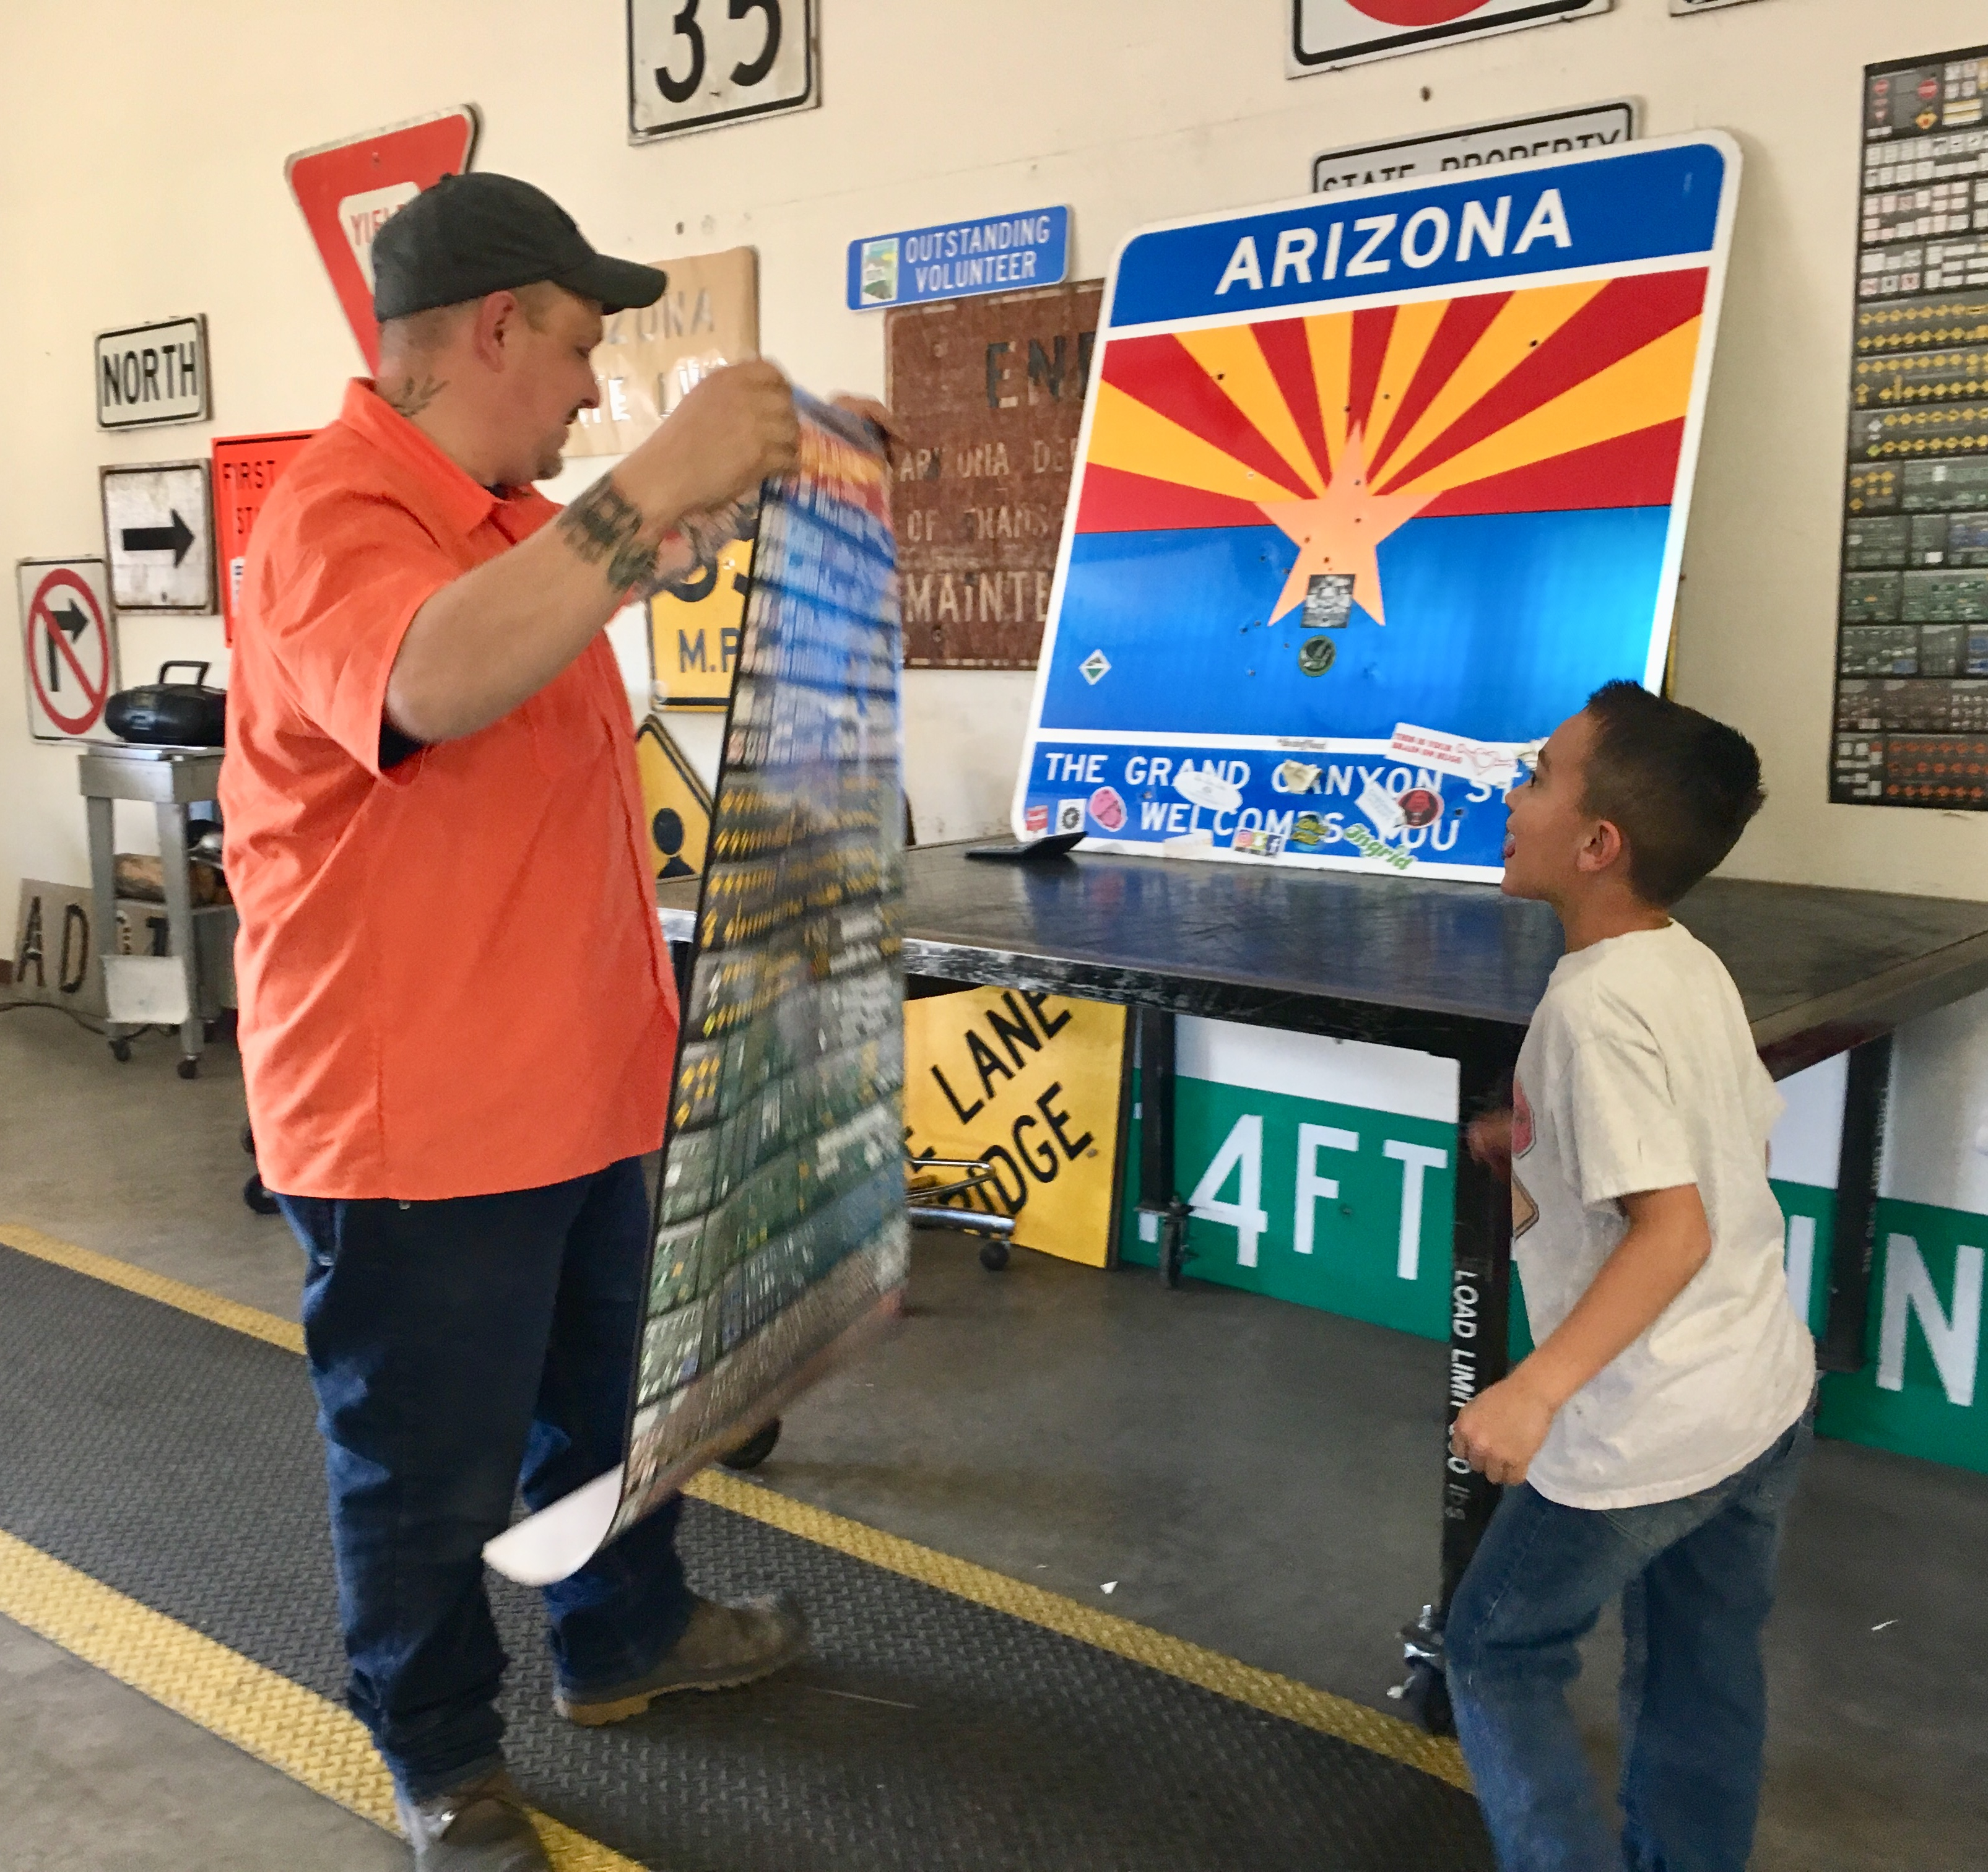 Hunter was fascinated with a chart of ADOT signs